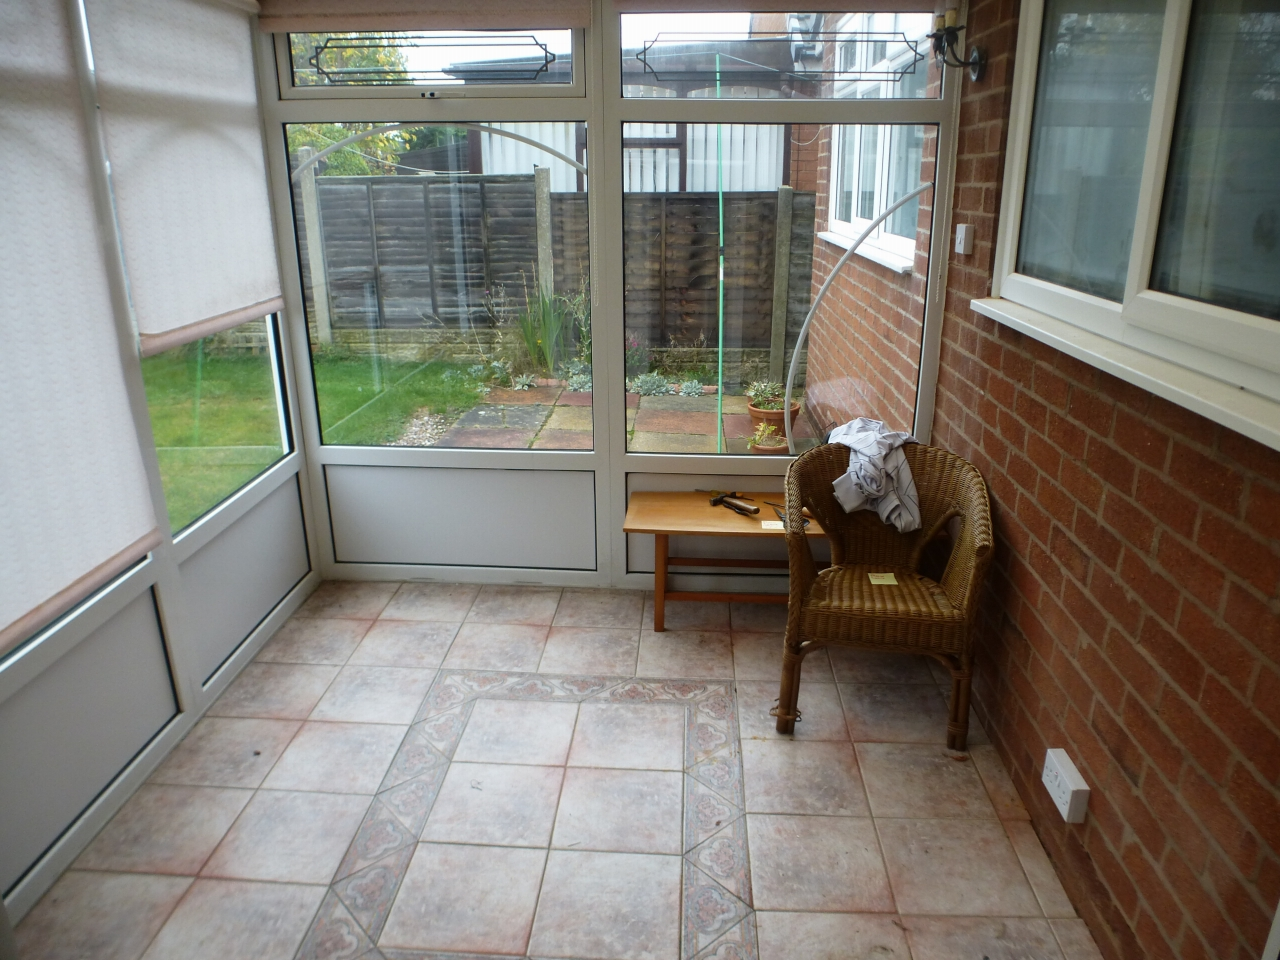 Image 1 of 1 of CONSERVATORY, on Accommodation Comprising for